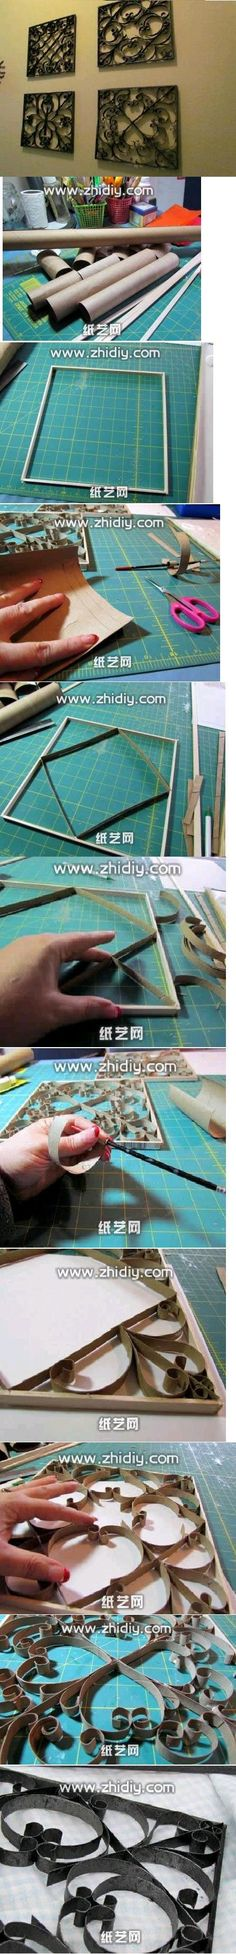 Aseo DIY rollo de papel decorativo Frame Proyectos DIY | UsefulDIY.com